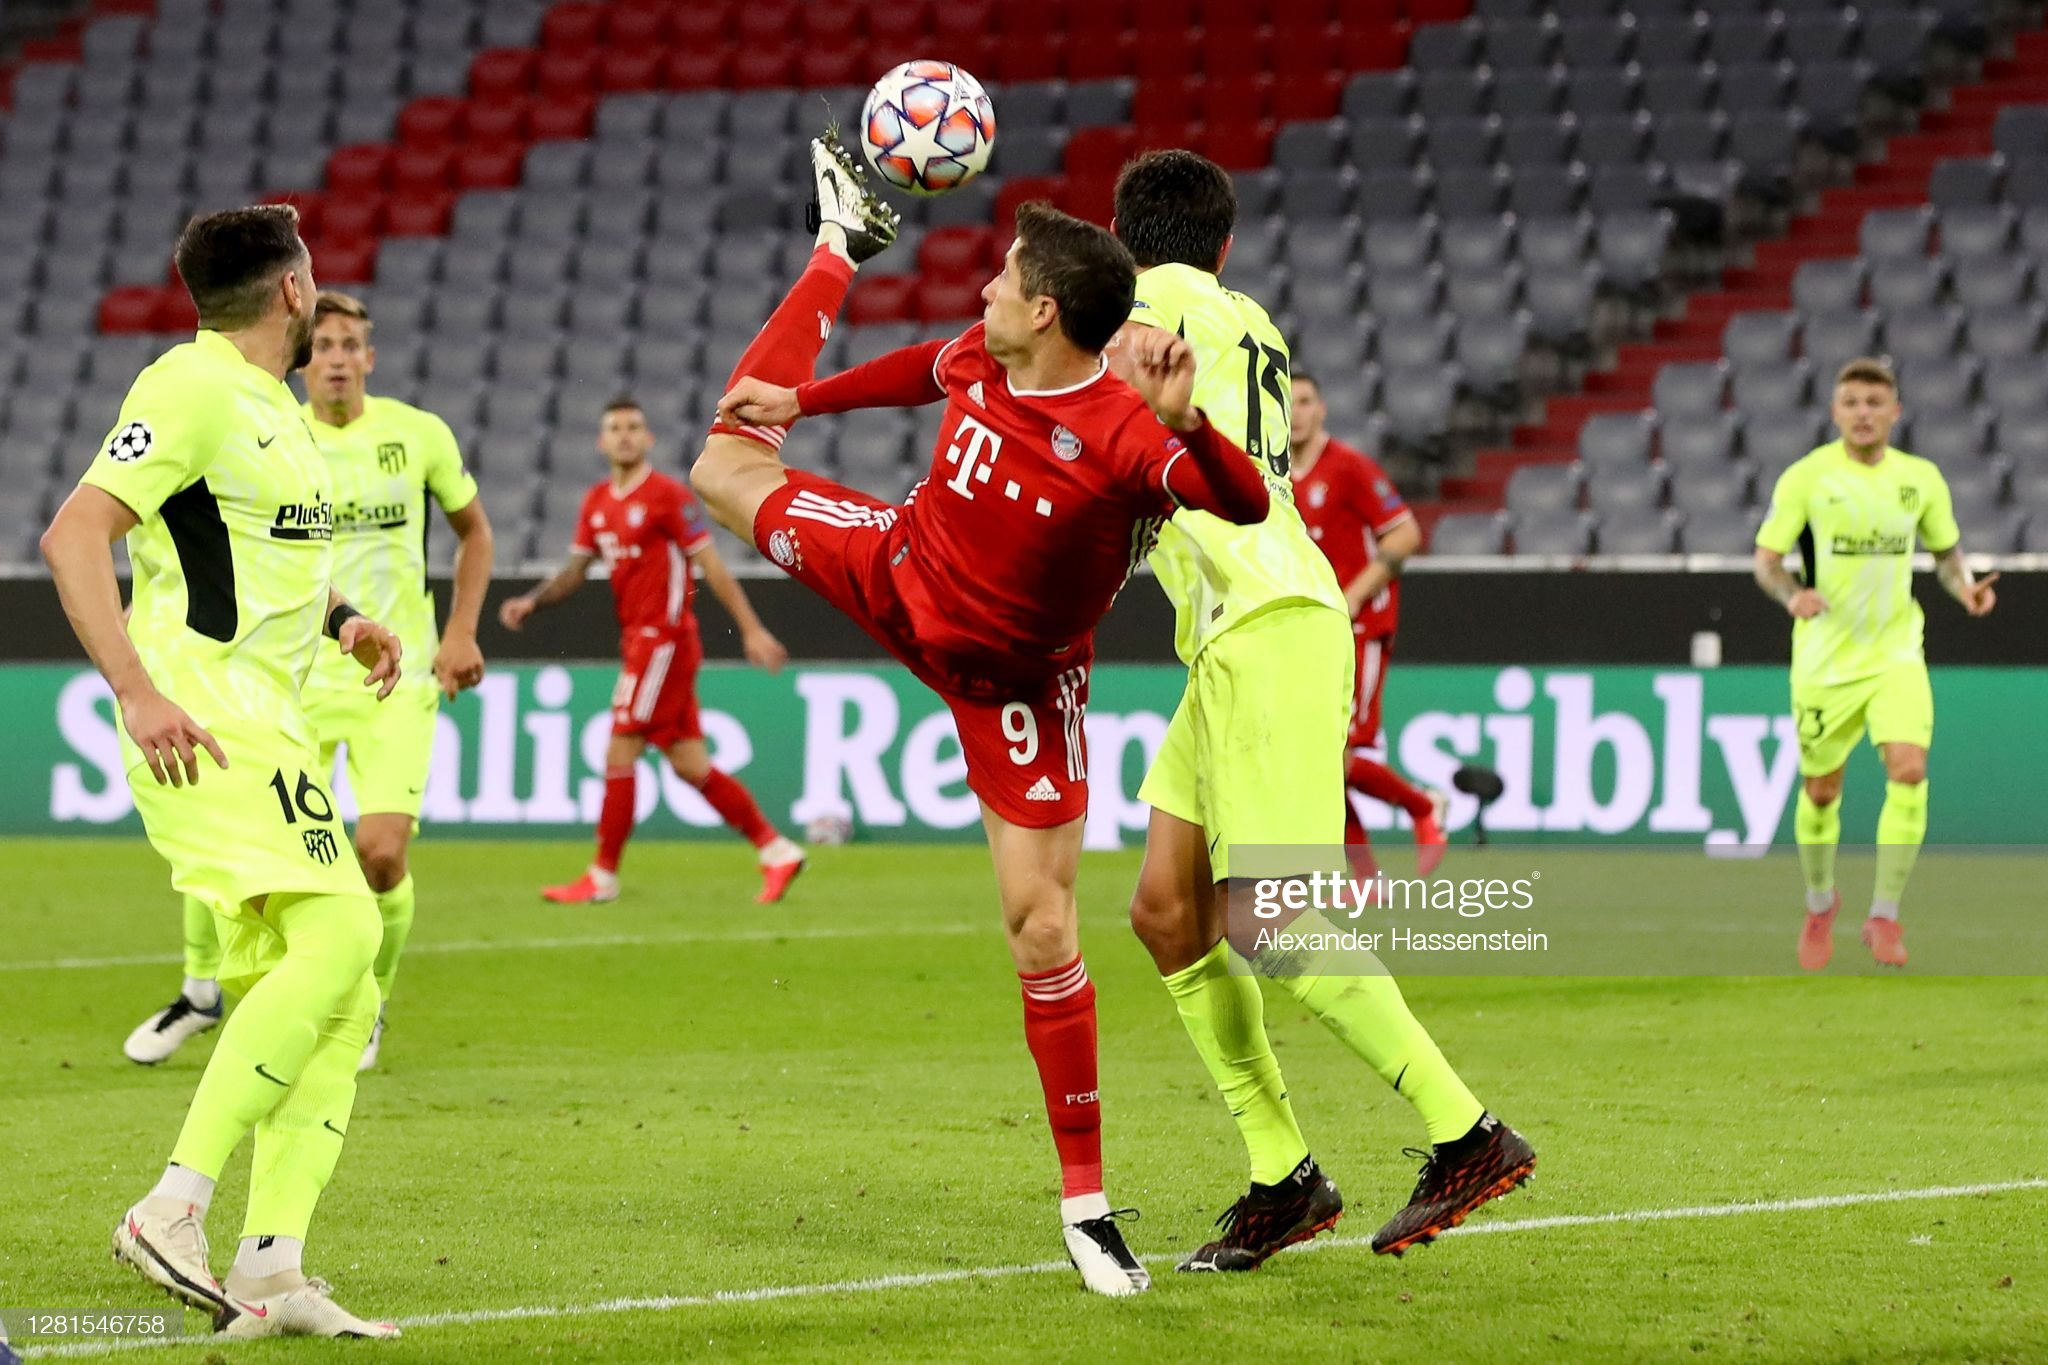 Atletico Madrid vs Bayern Munich Preview, prediction and odds